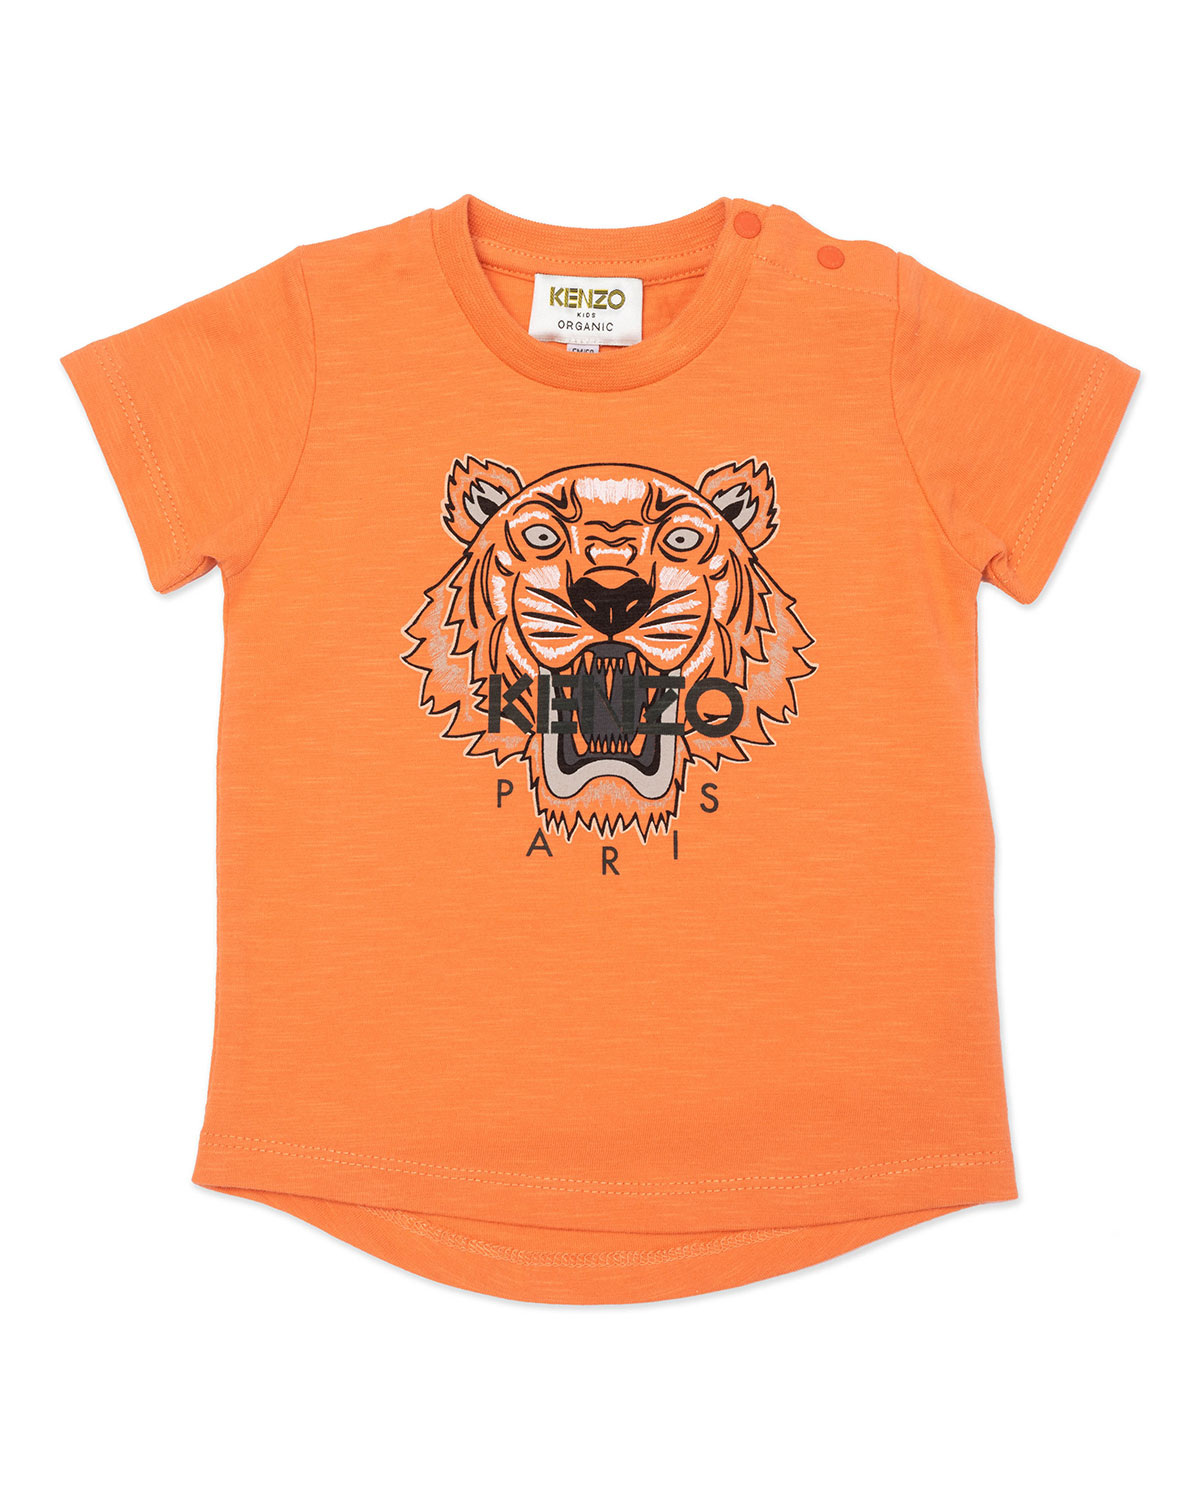 Boy's Classic Tiger Icon Graphic T-Shirt